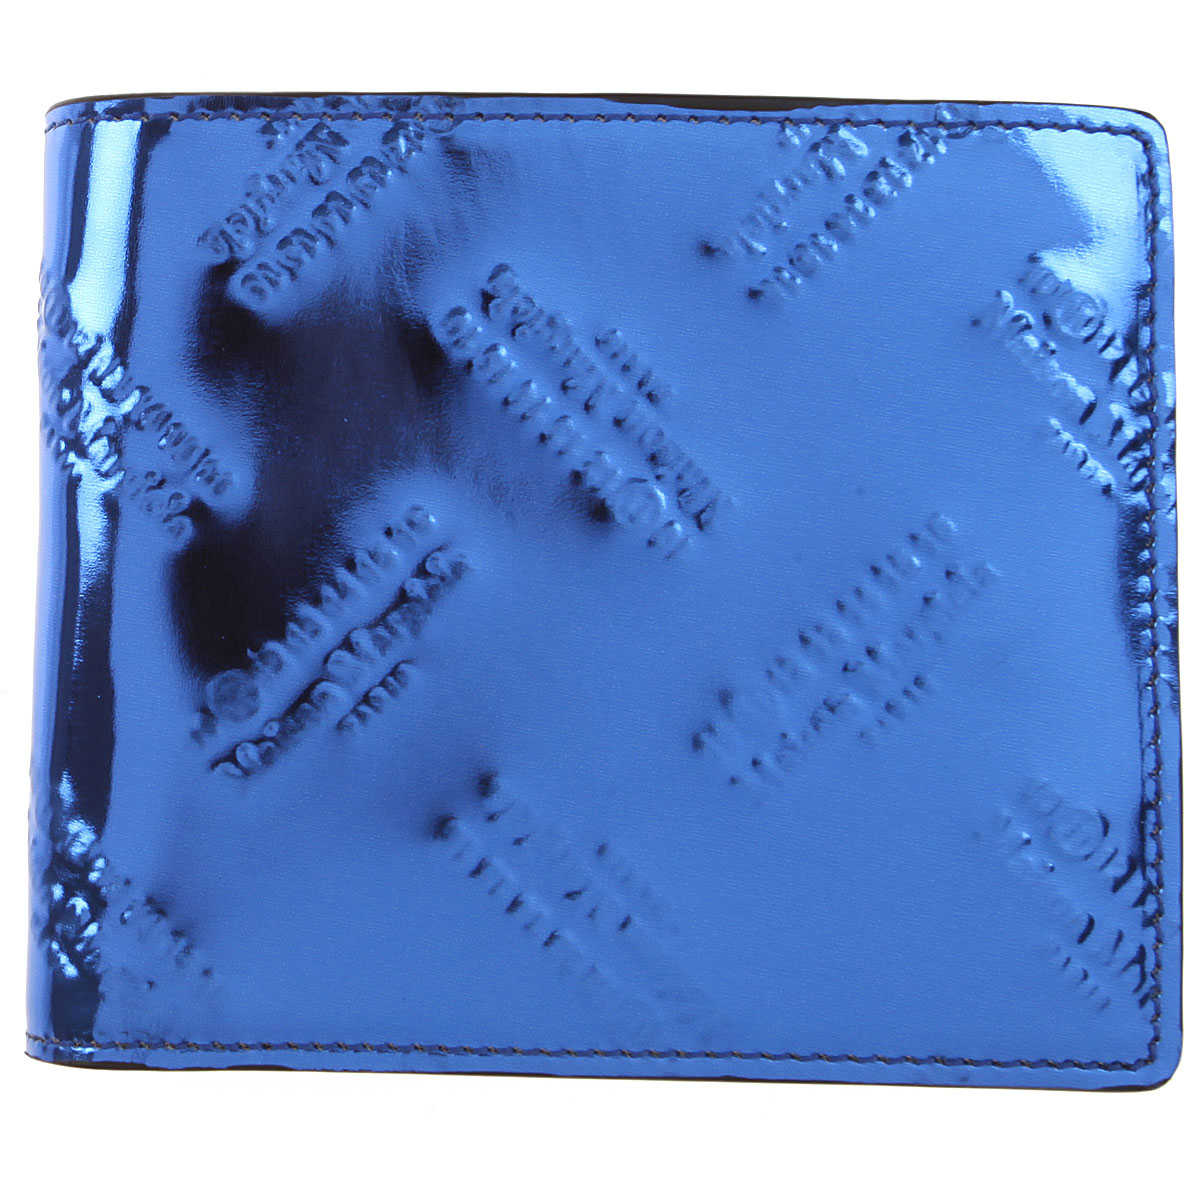 Maison Martin Margiela Wallet for Men On Sale in Outlet Nautical Blue SE - GOOFASH